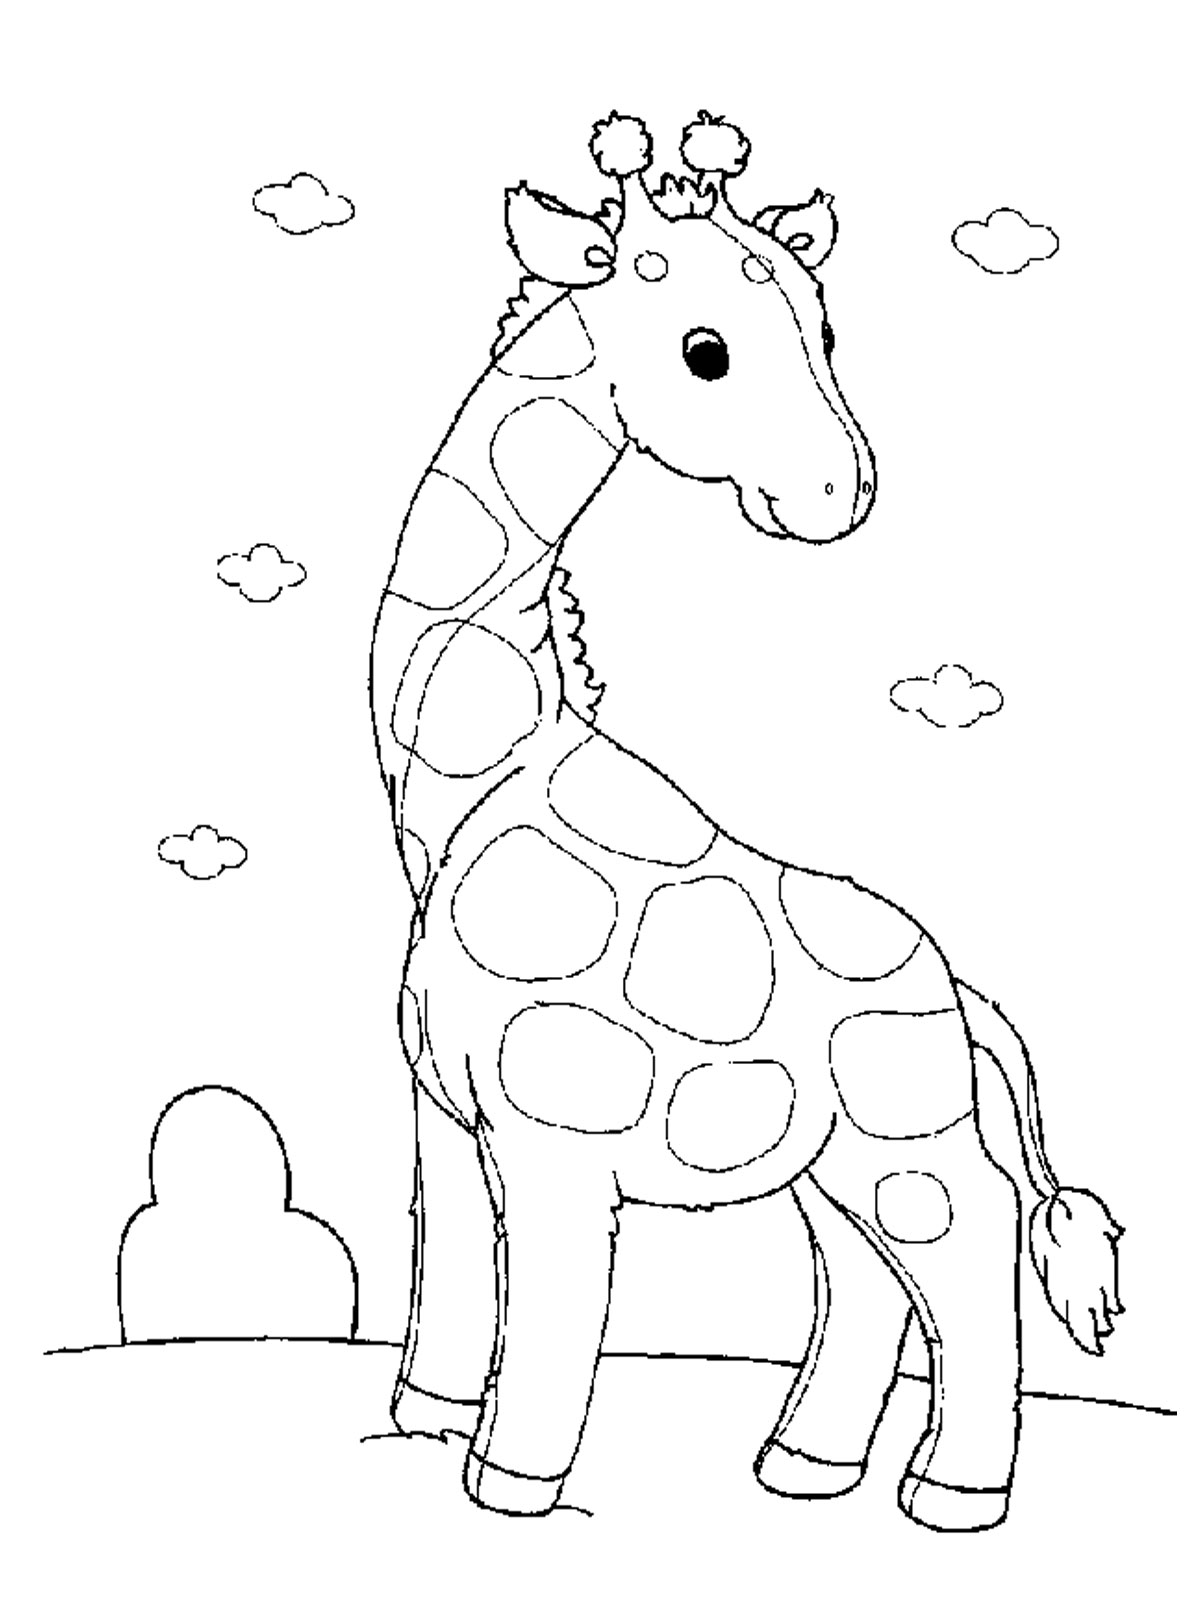 Free printable giraffe coloring pages for kids for Free zoo animal coloring pages